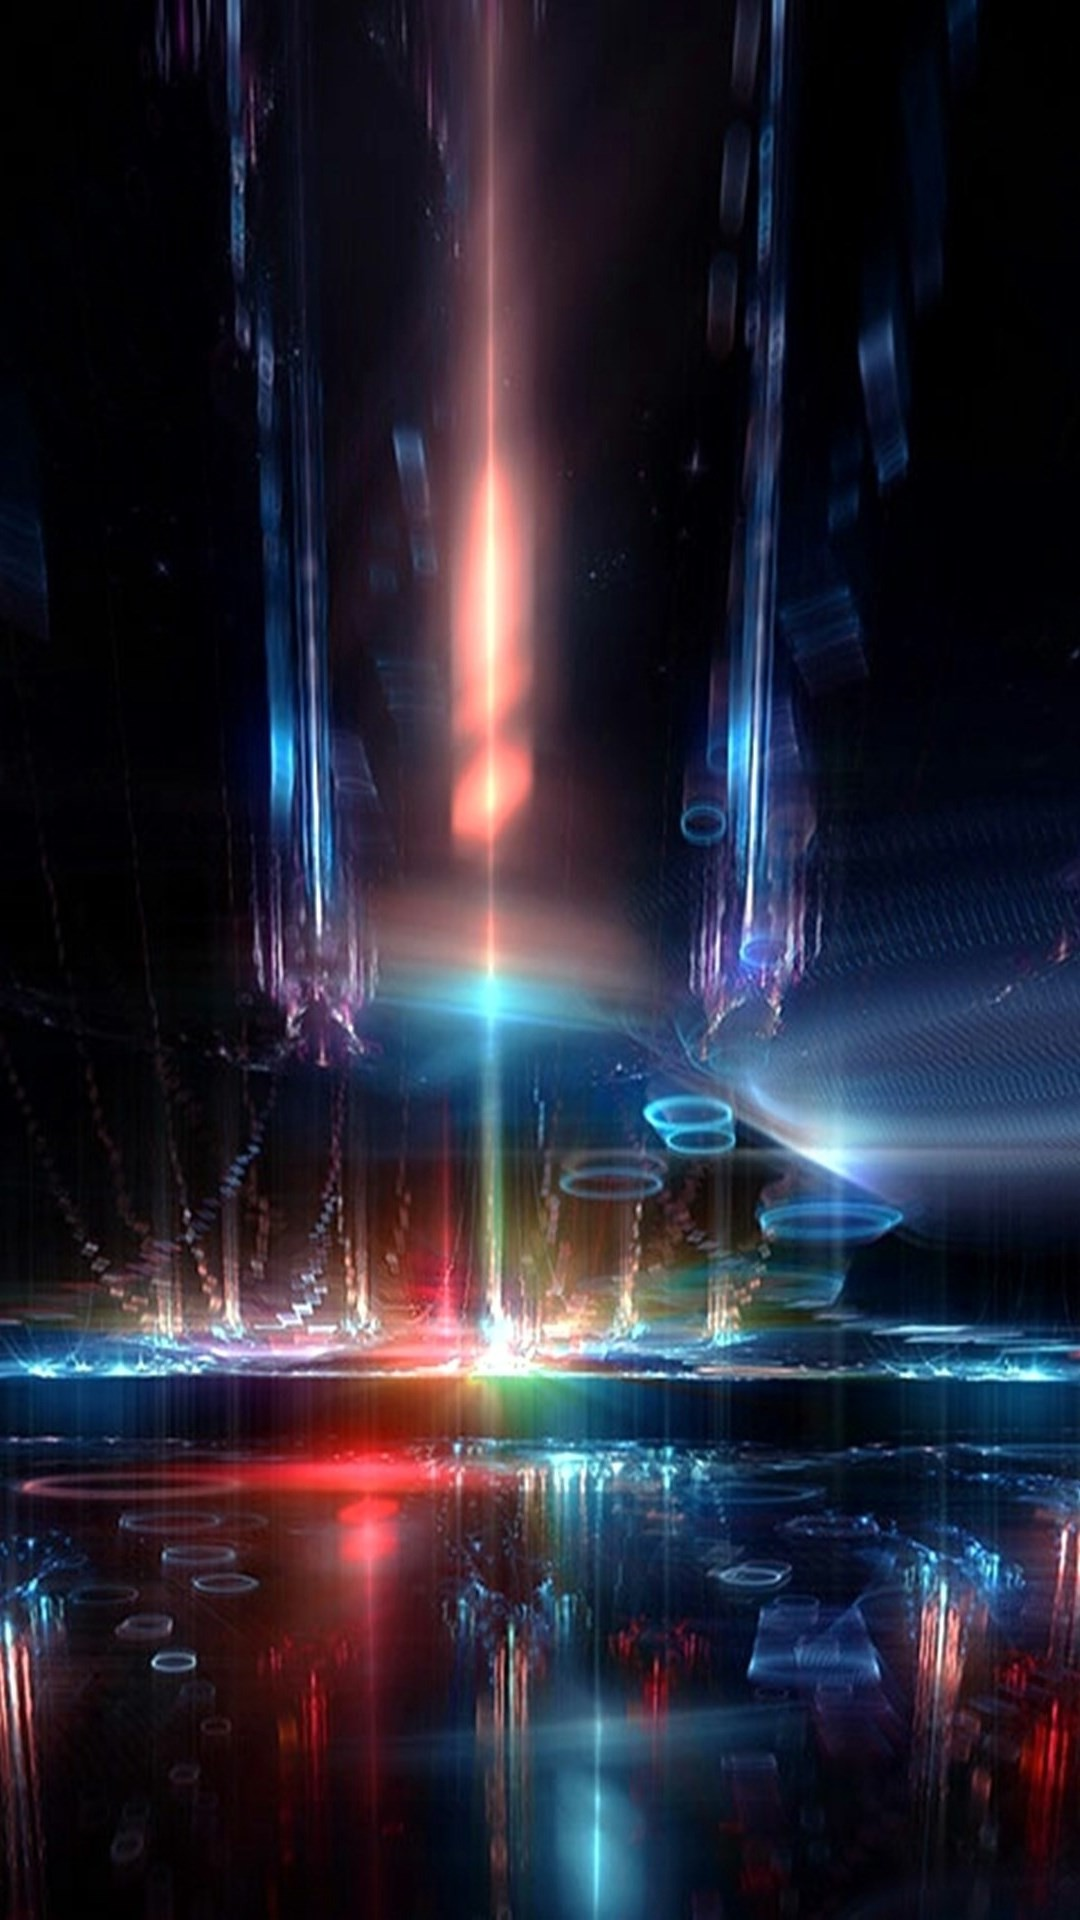 Download 3d Moving Wallpapers For Windows 7 Stage Lighting Wallpaper 68 Images